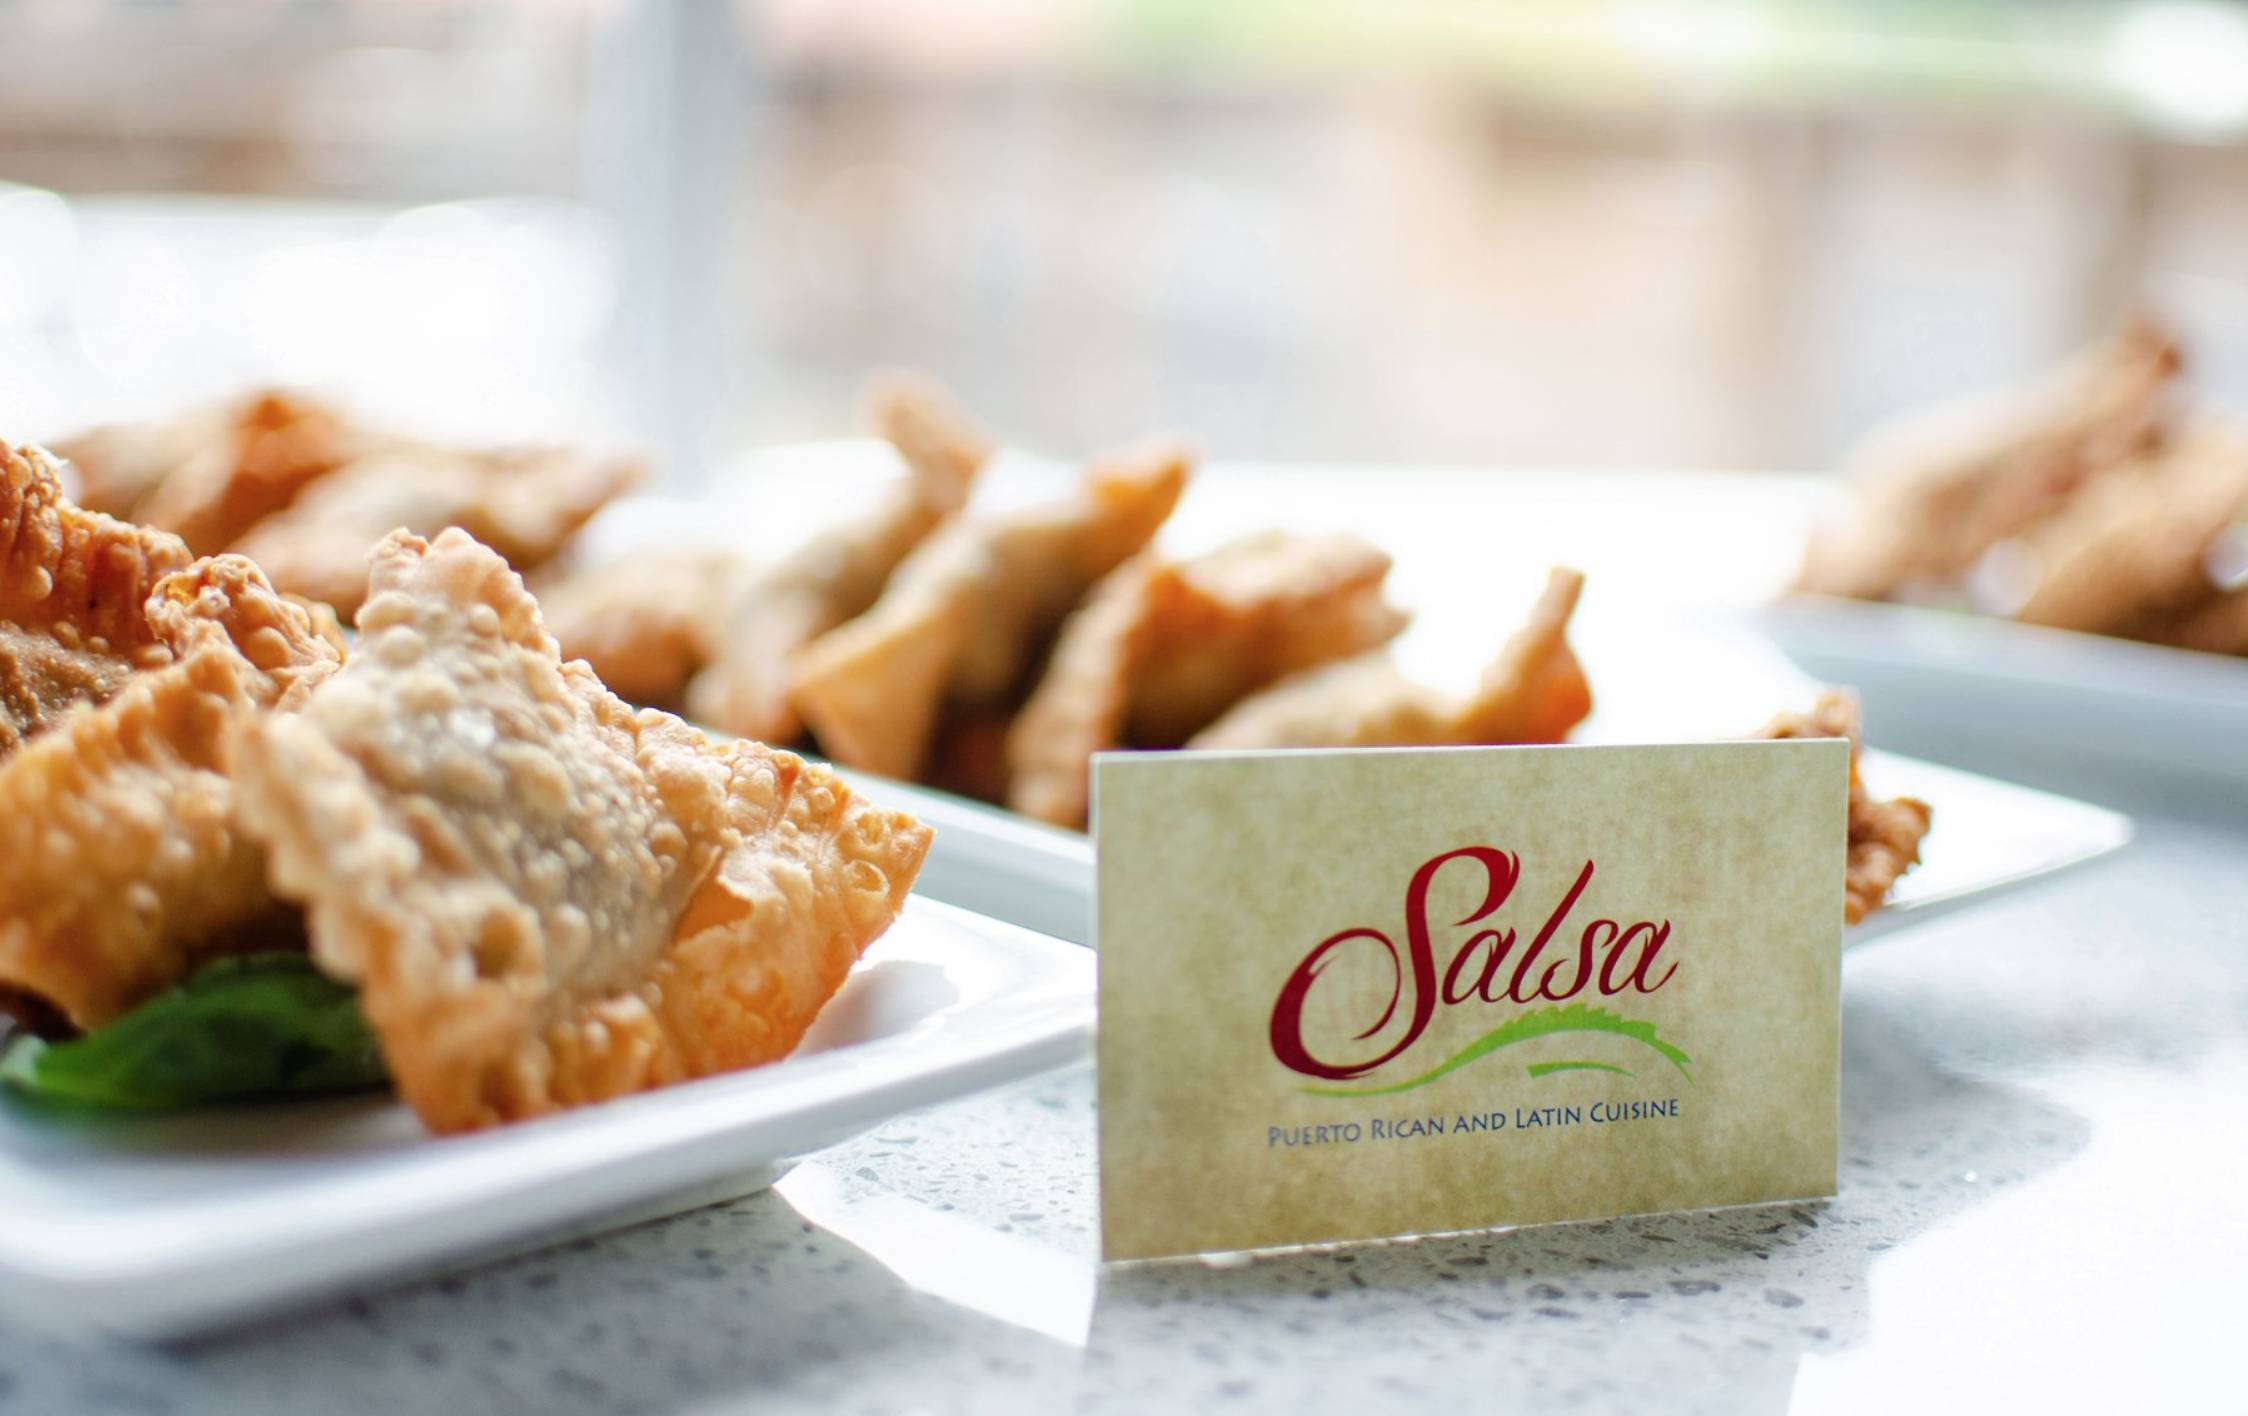 Salsa Puerto Rican and Latin Cuisine